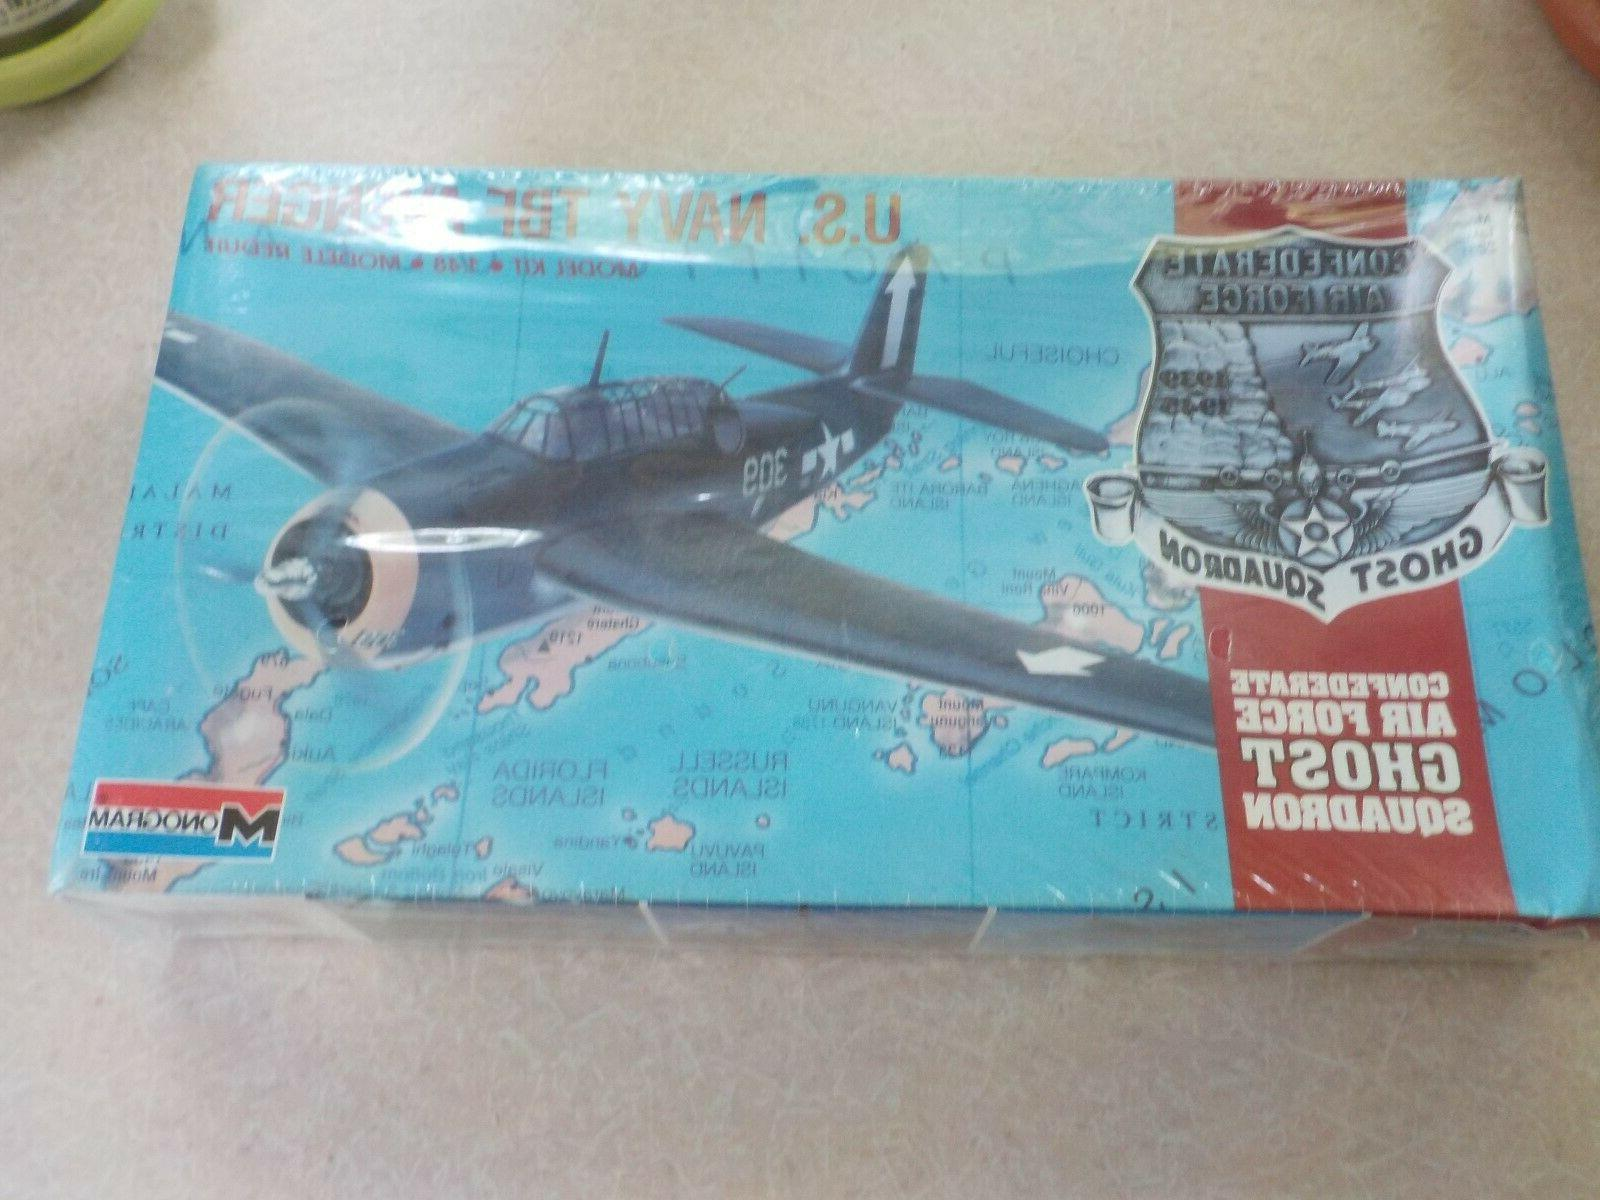 1 48 us navy tbf avenger model